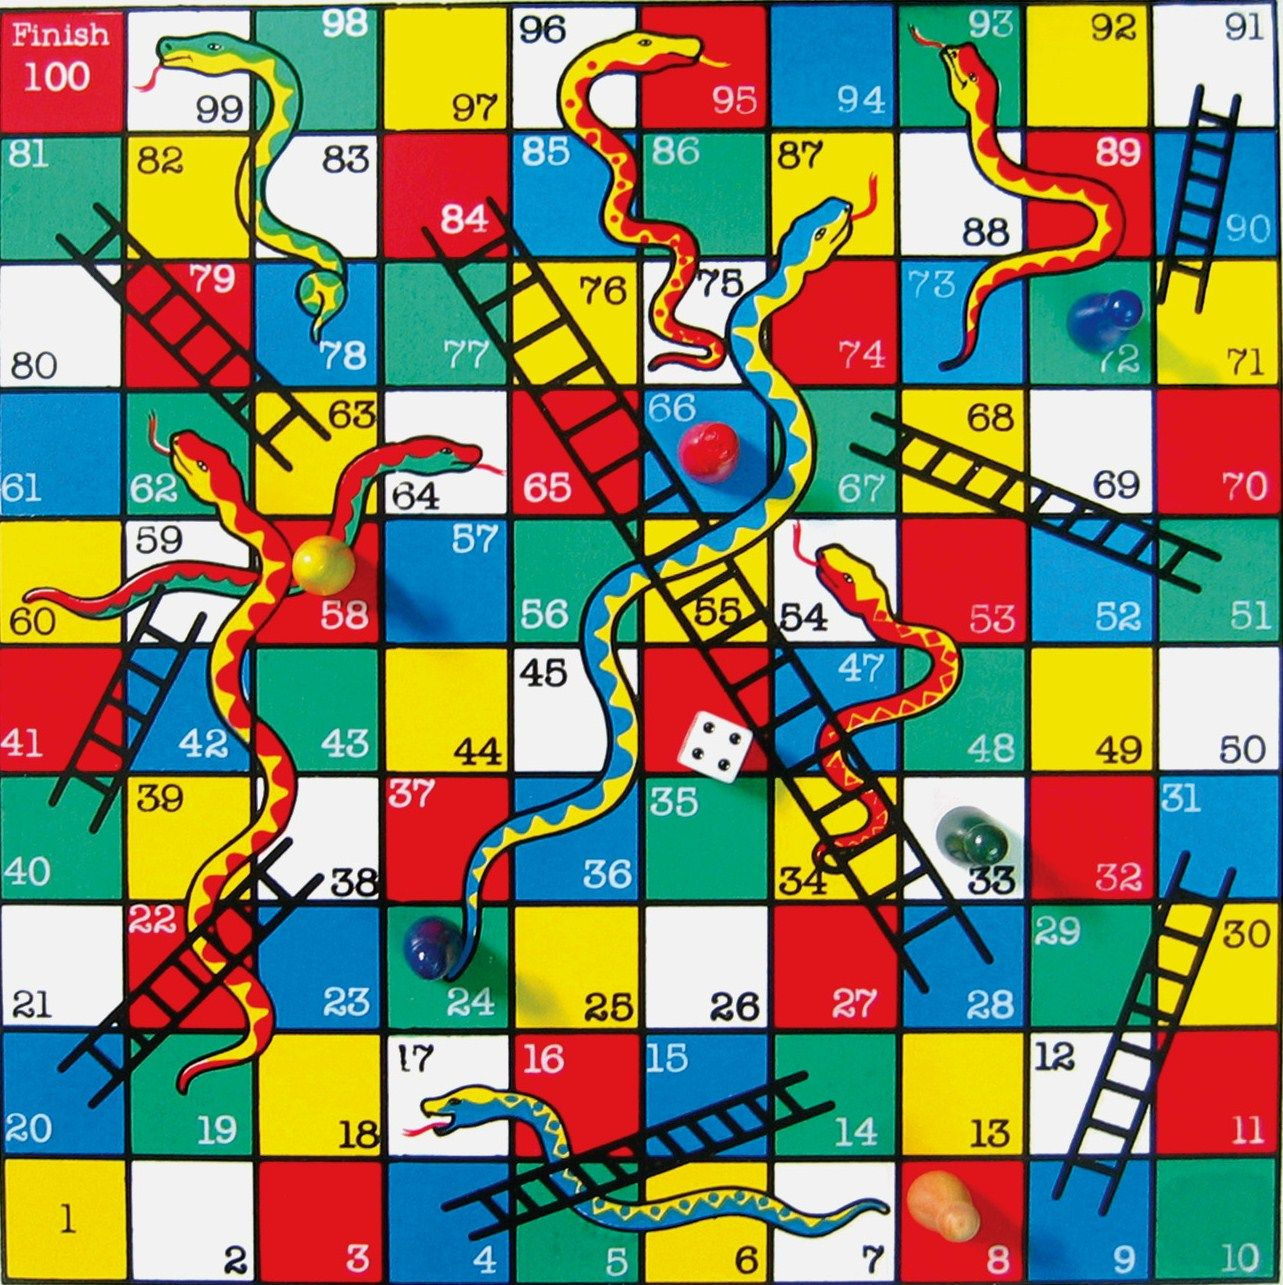 Chutes and ladders game board template classical snakes for Chutes and ladders board game template